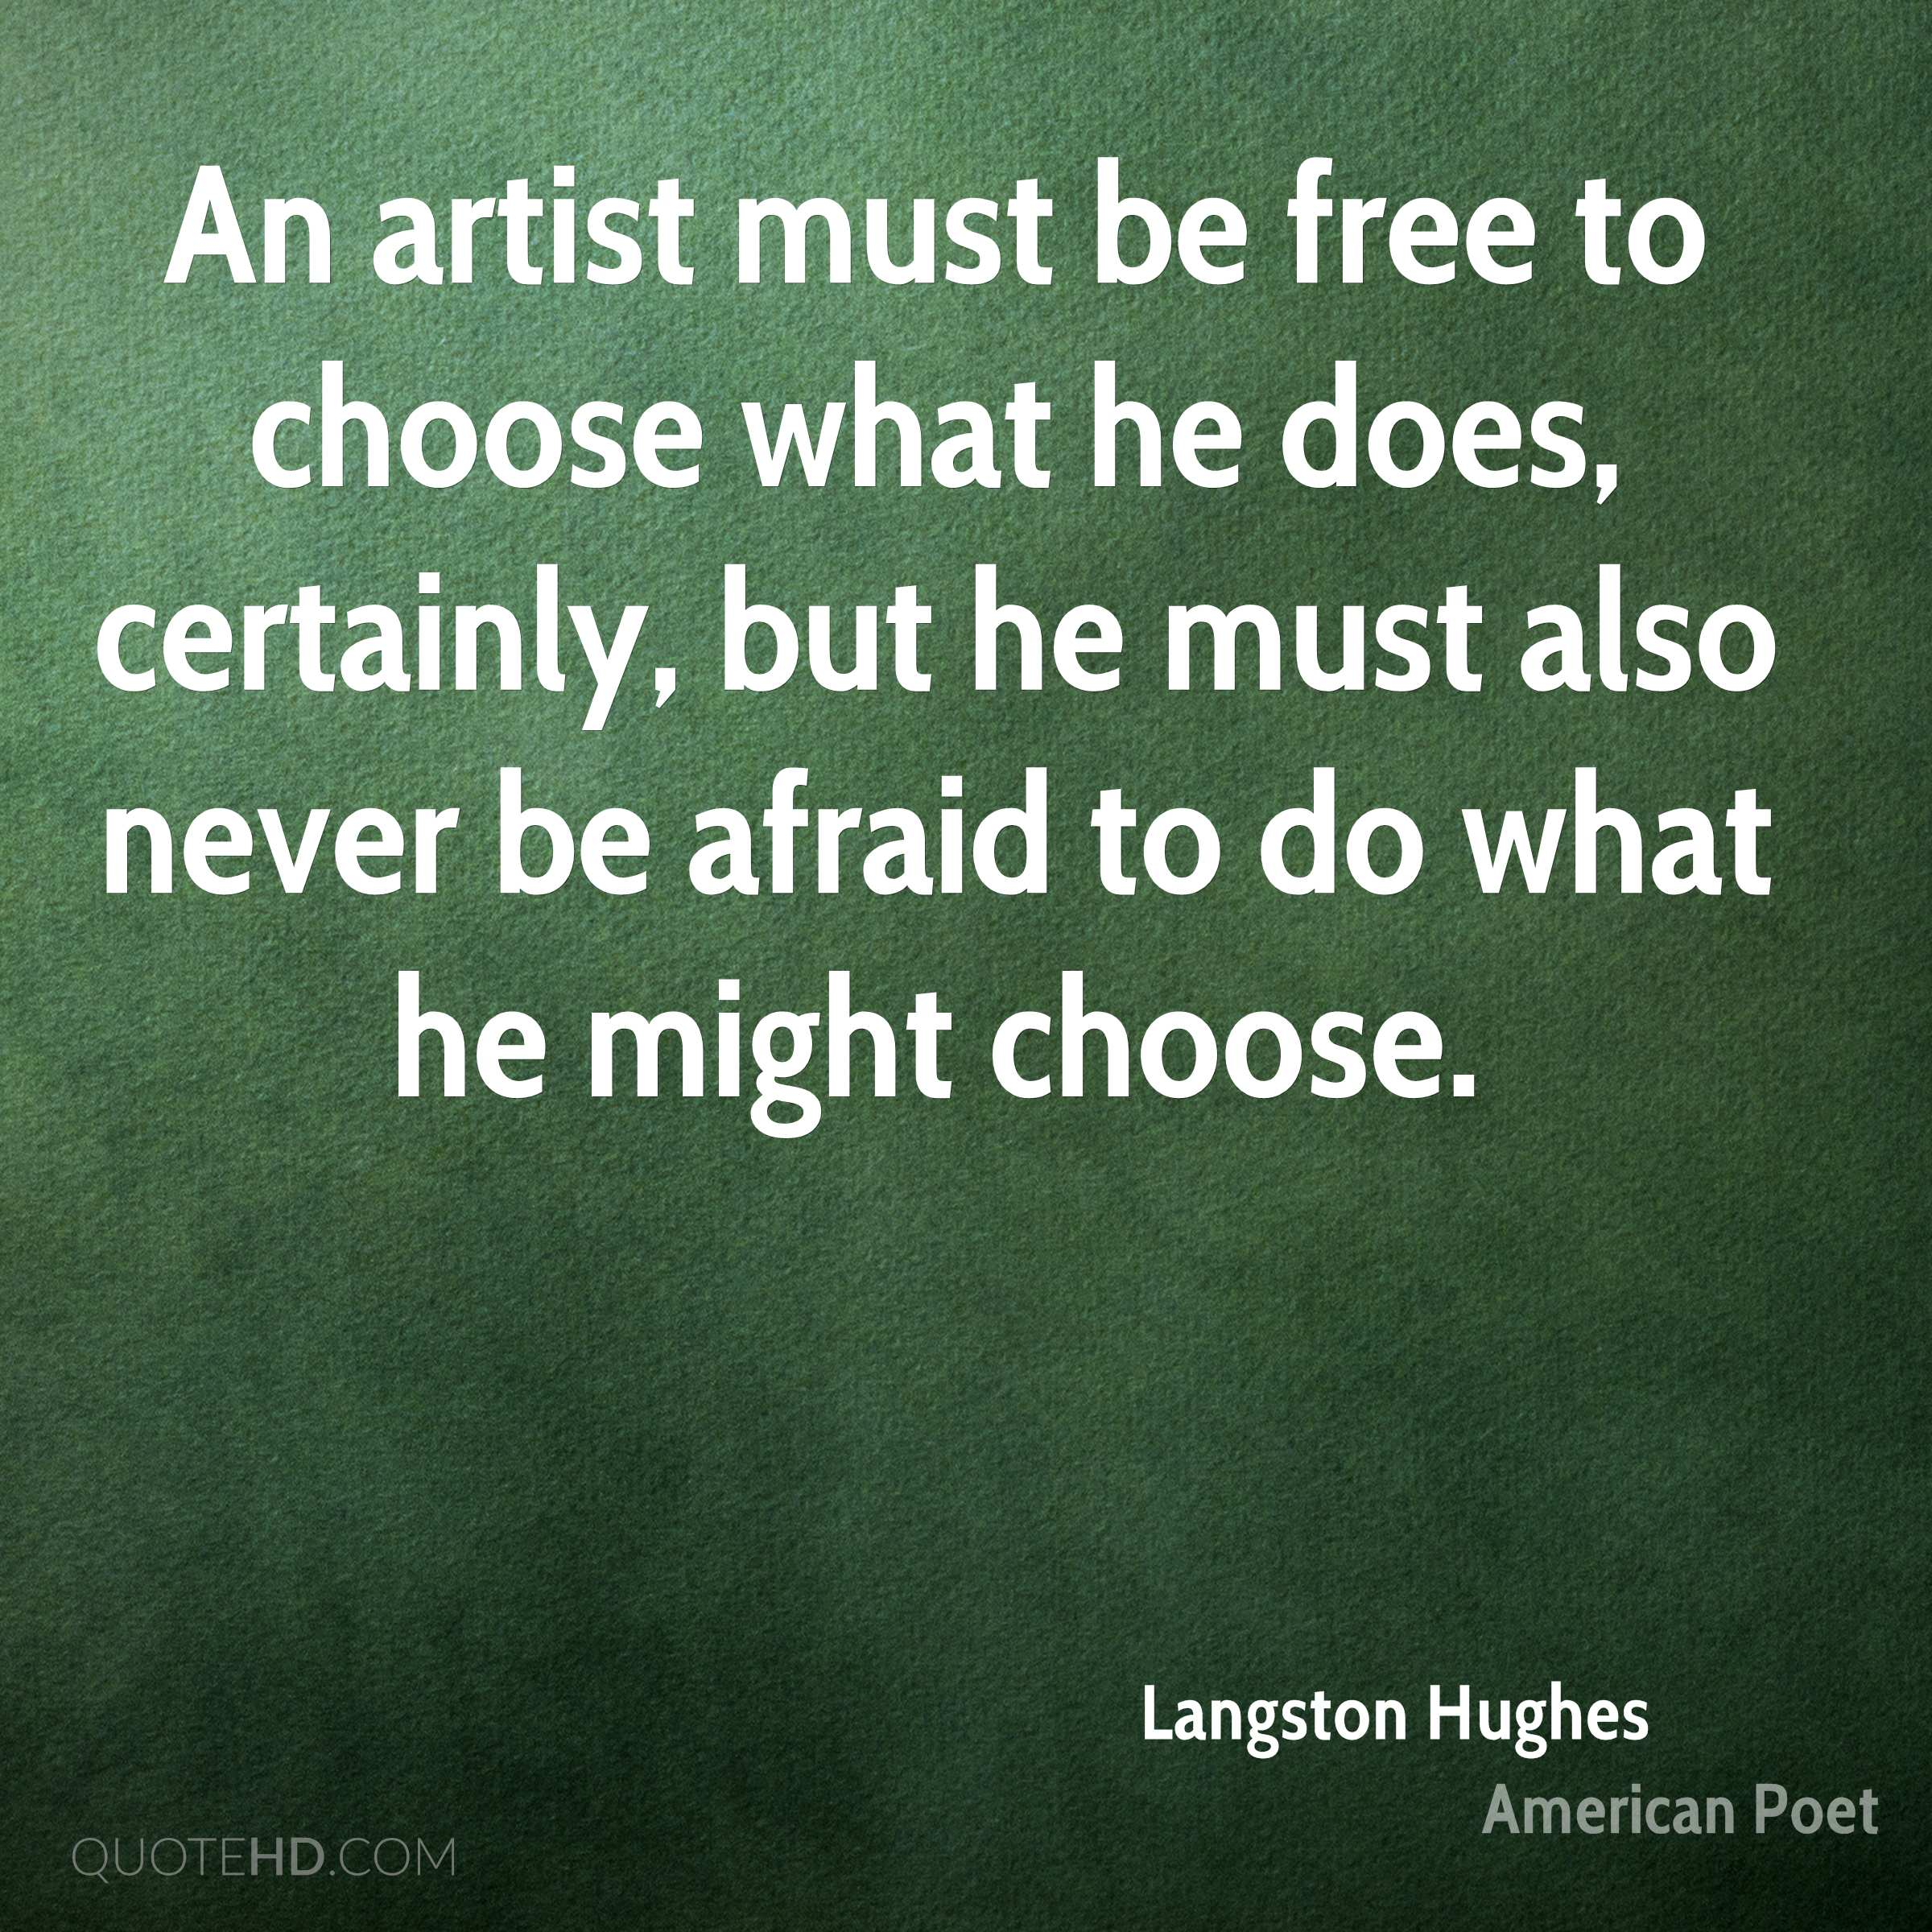 An artist must be free to choose what he does, certainly, but he must also never be afraid to do what he might choose.